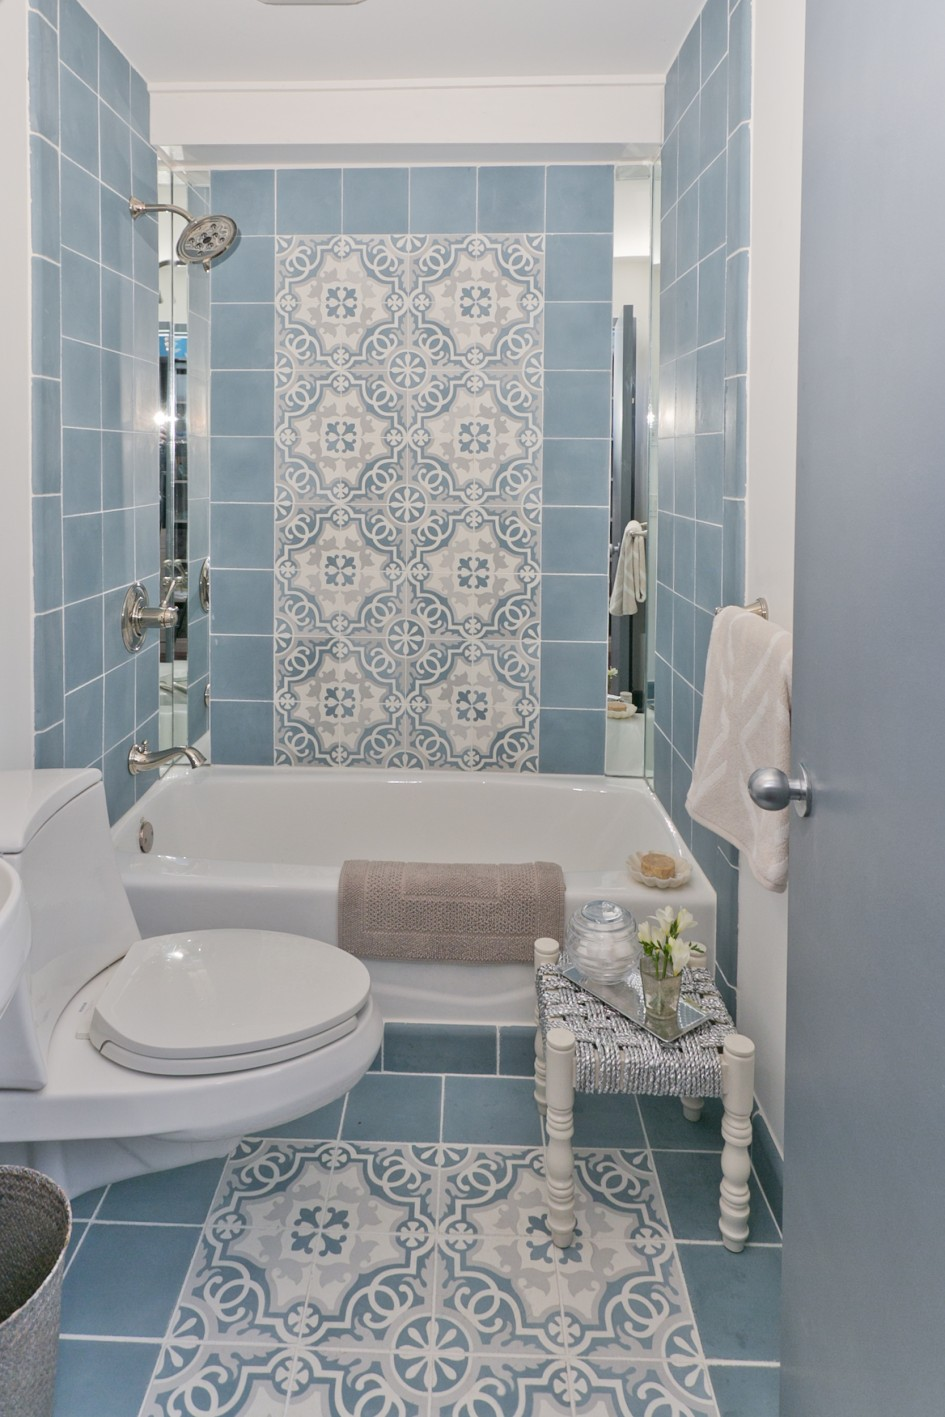 40 vintage blue bathroom tiles ideas and pictures - Carrelage salle de bain vintage ...